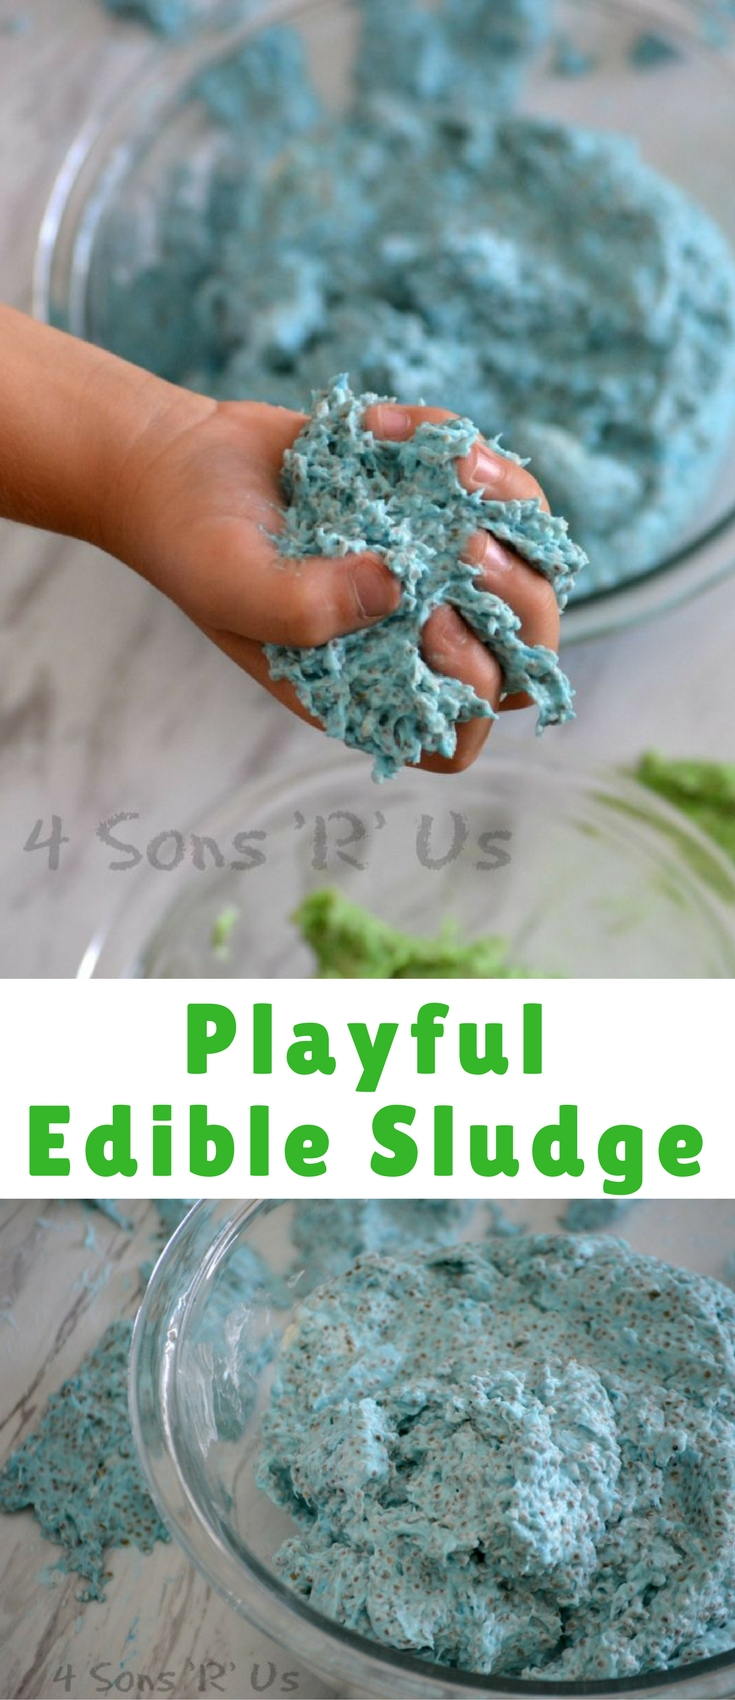 A fun sticky sludge that's perfect for sensory play, and also safe for the littler ones who're still taste-testing their way through life.